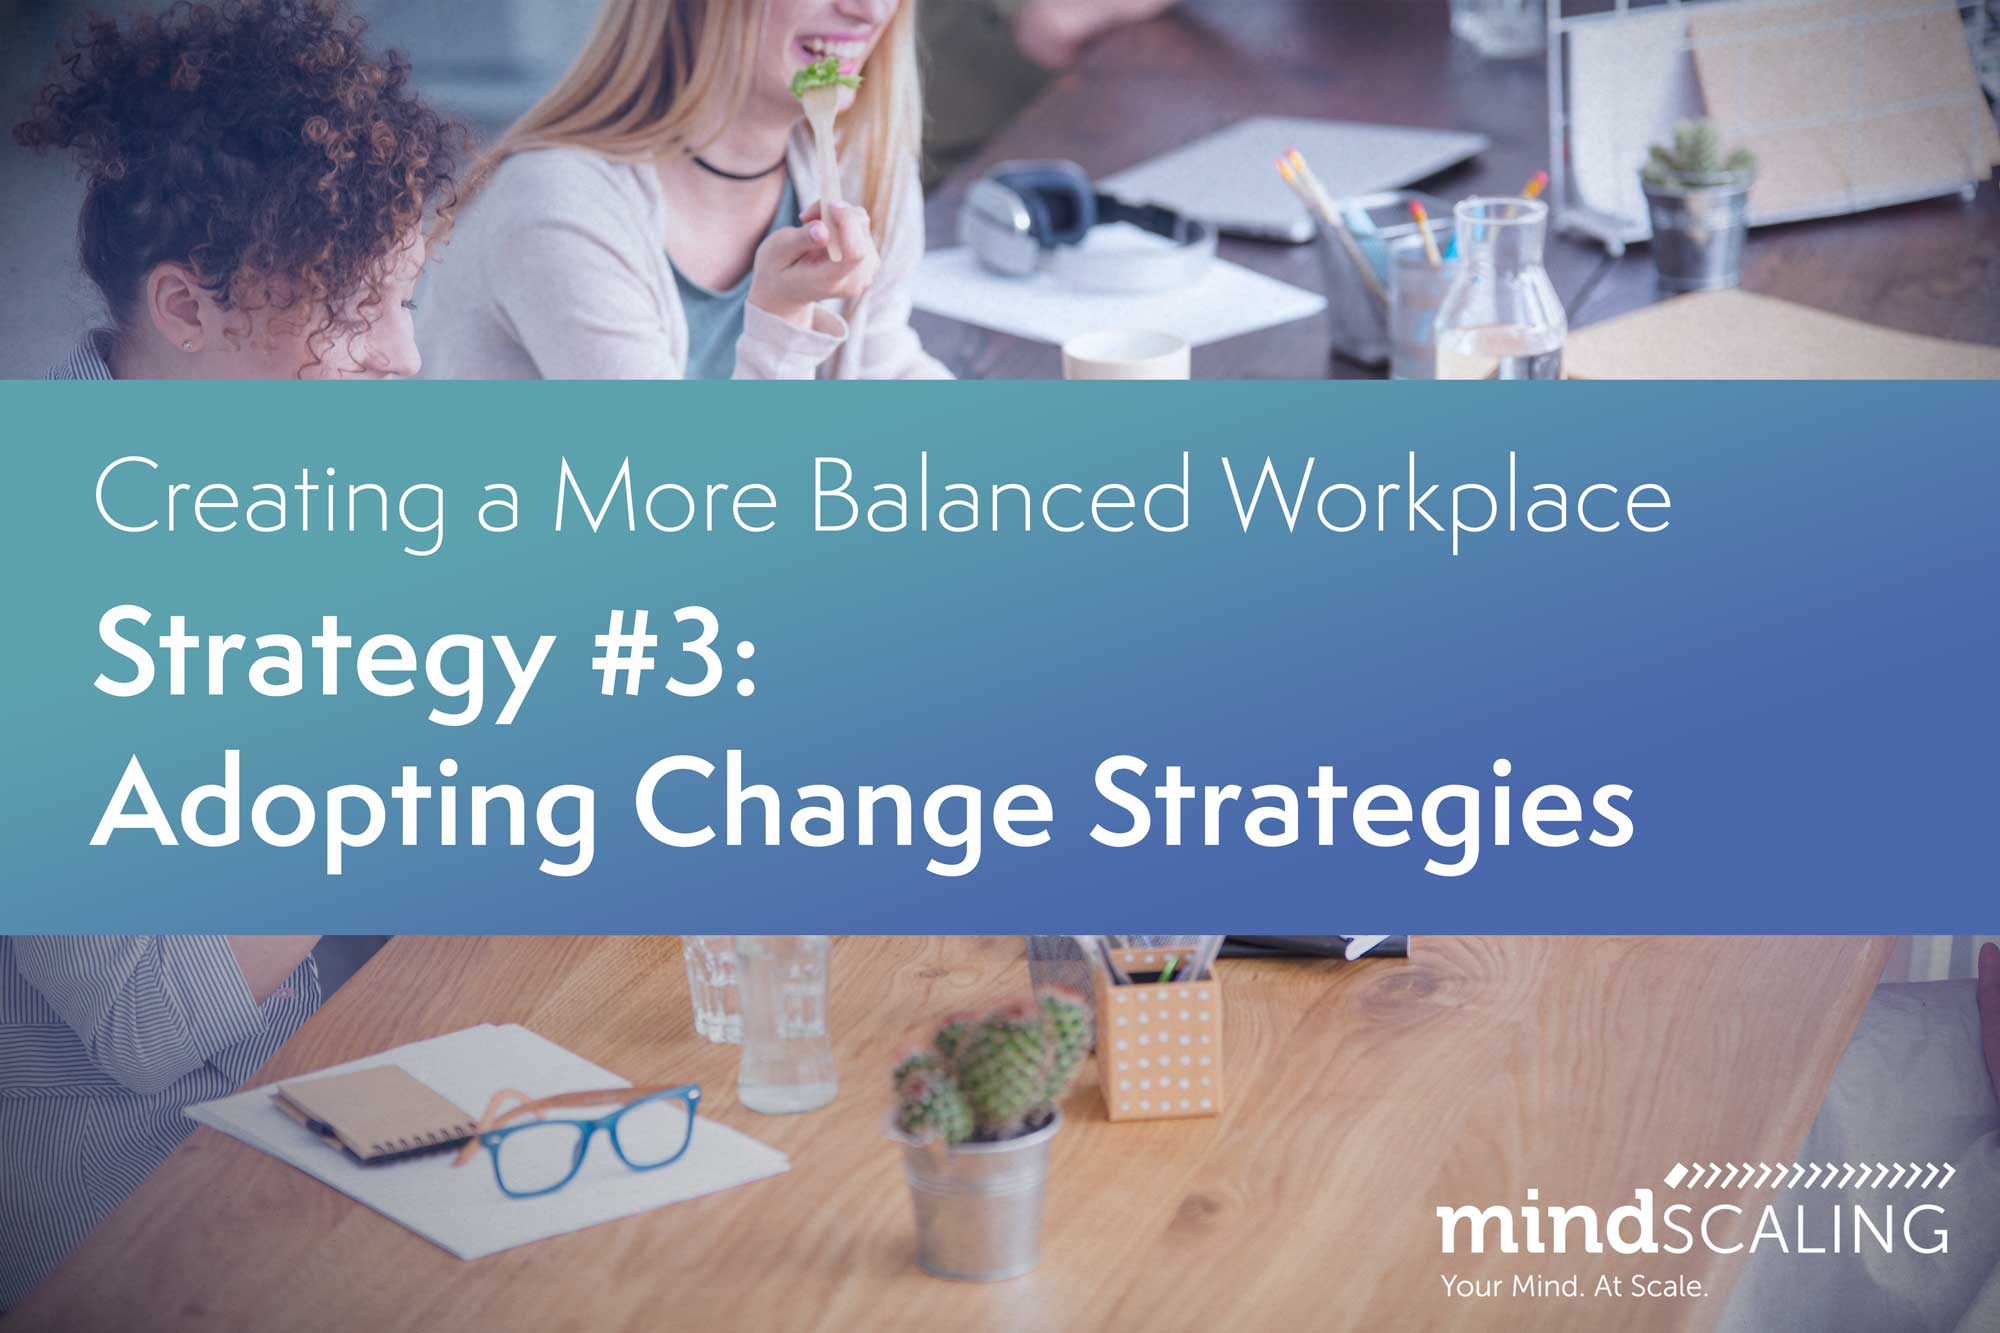 Creating a More Balanced Workplace: Strategy #3: Adopting Change Strategies